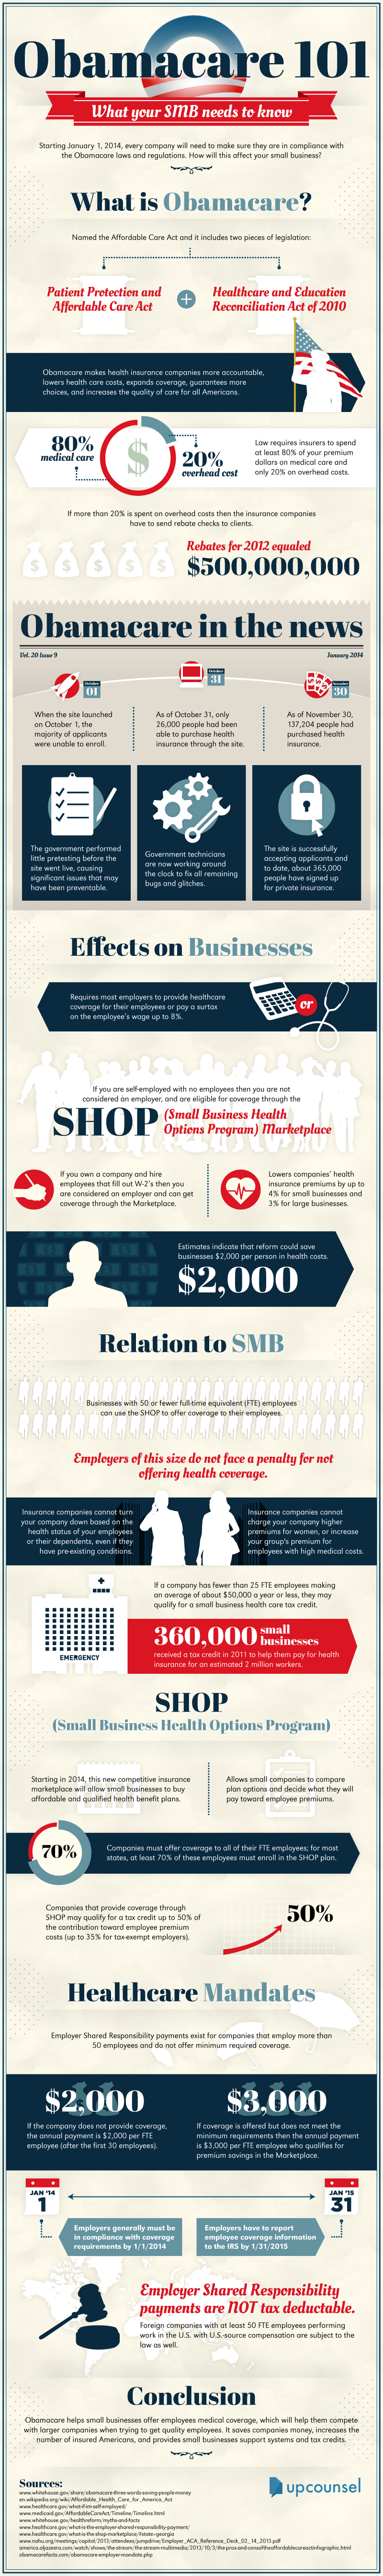 Obamacare-on-Small-Businesses